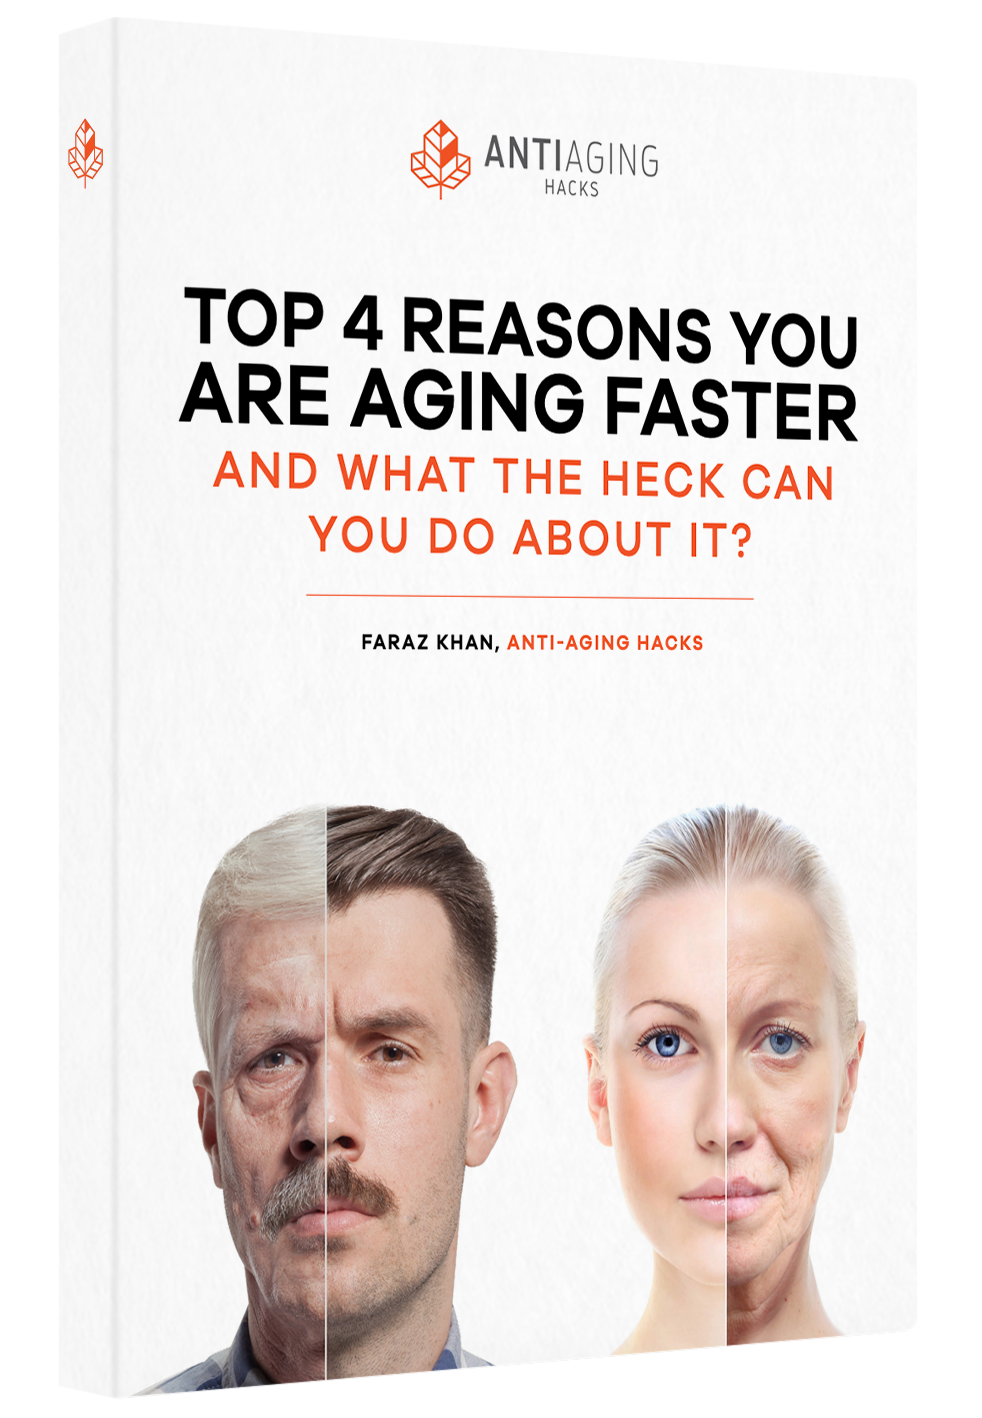 Slow Down Your Aging